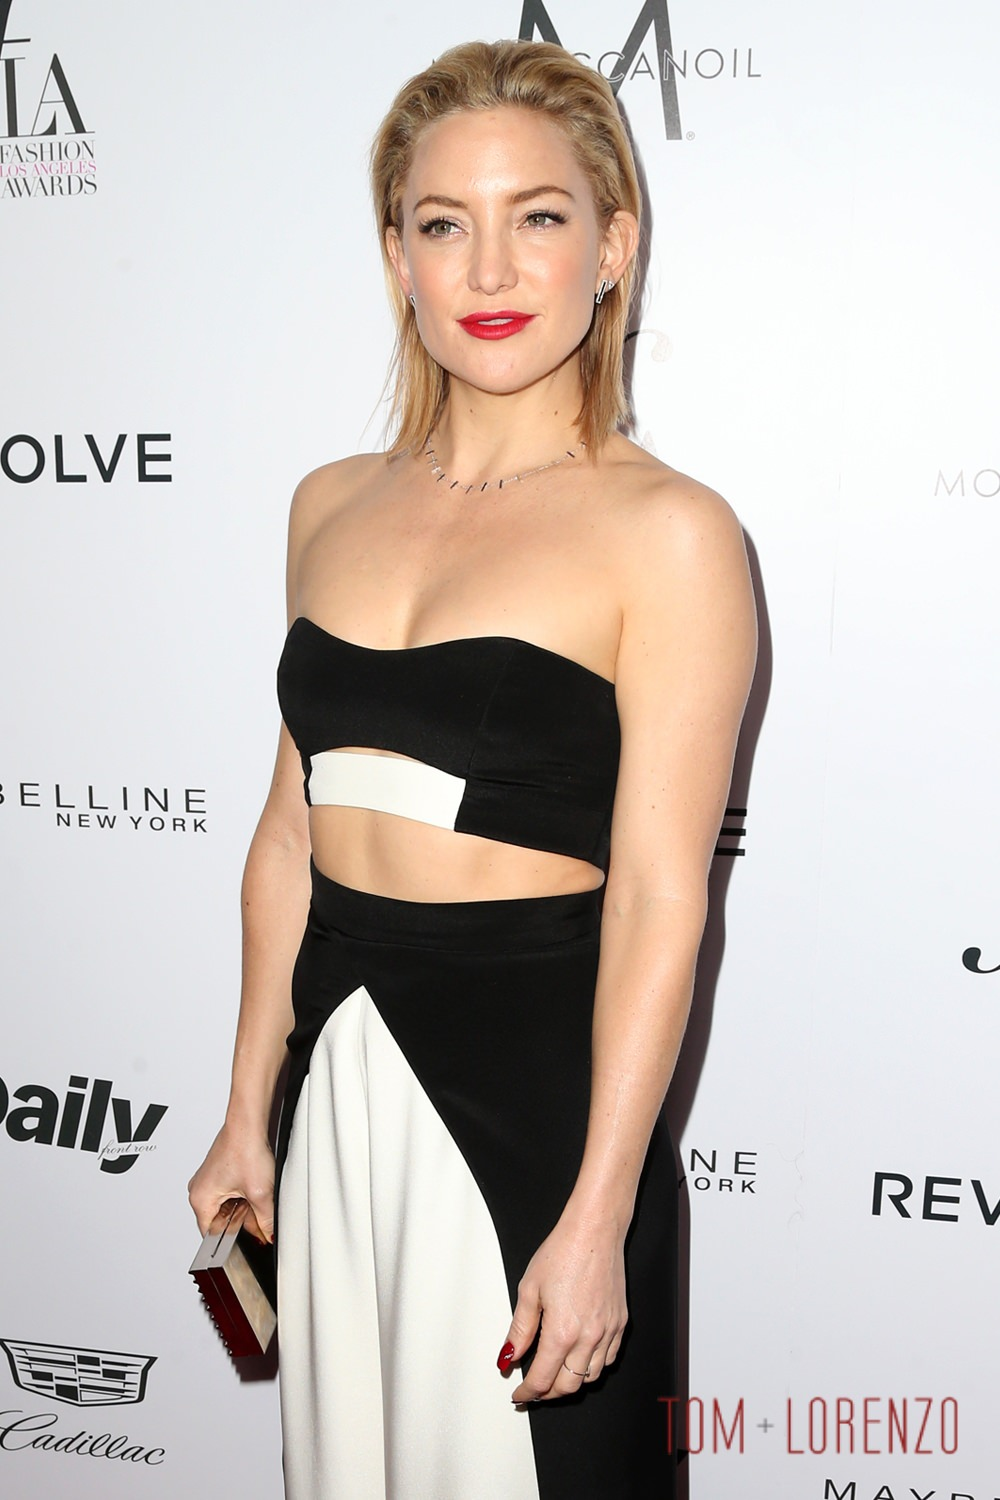 Kate-Hudson-The-Daily-Front-Row-Fashion-Los-Angeles-Awards-August-Getty-Atelier-Tom-Lorenzo-Site (1)